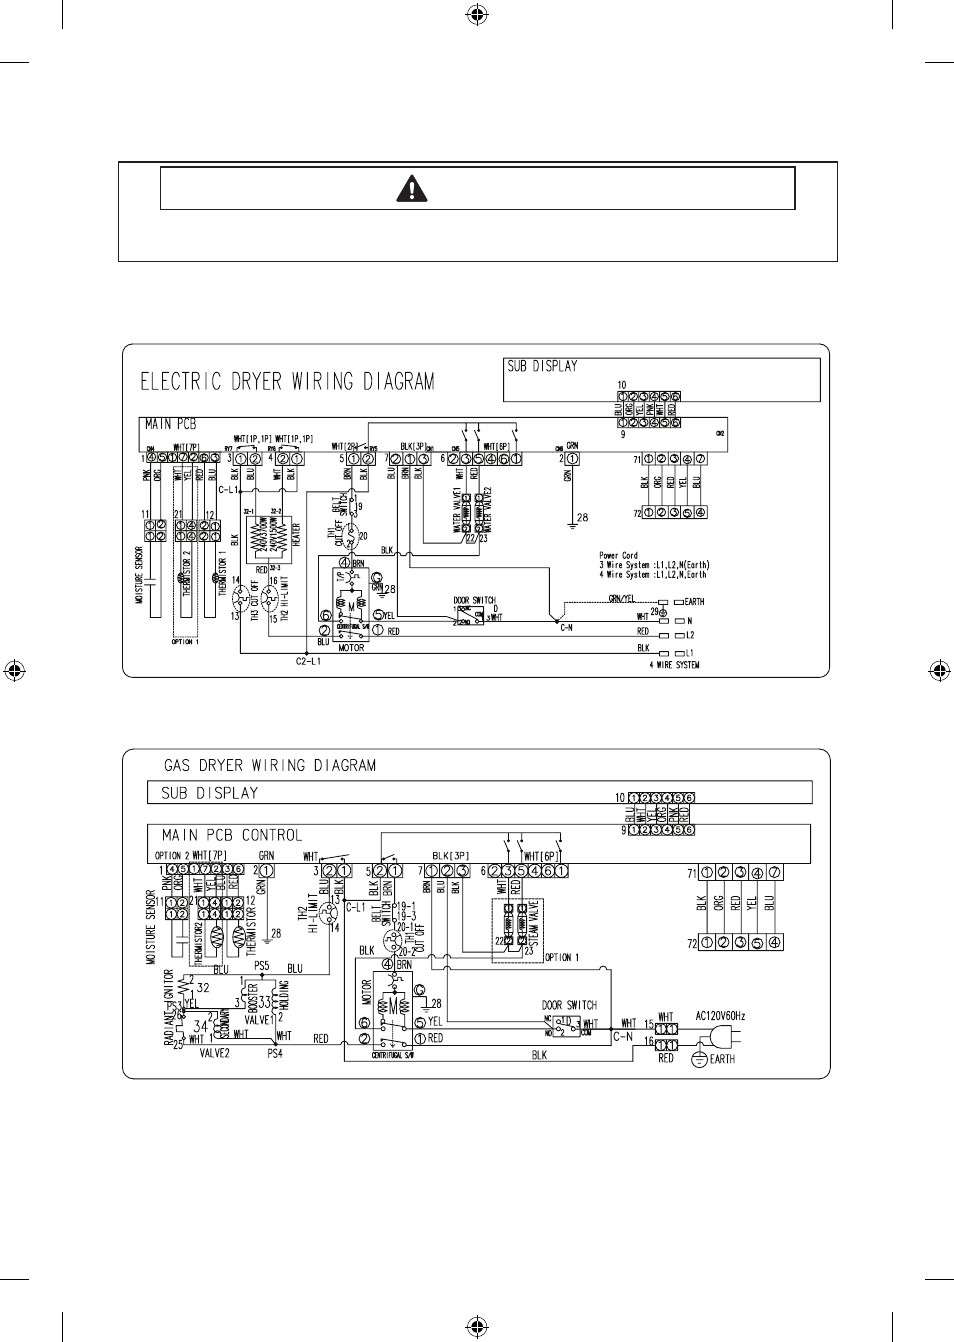 Samsung Dryer Dve G 50r5400 Wiring Diagrams Samsung Electric Dryer Model Dv42h5600ep A3 I Unhooked the Wires the Heater and thermostat S Of Samsung Dryer Dve G 50r5400 Wiring Diagrams